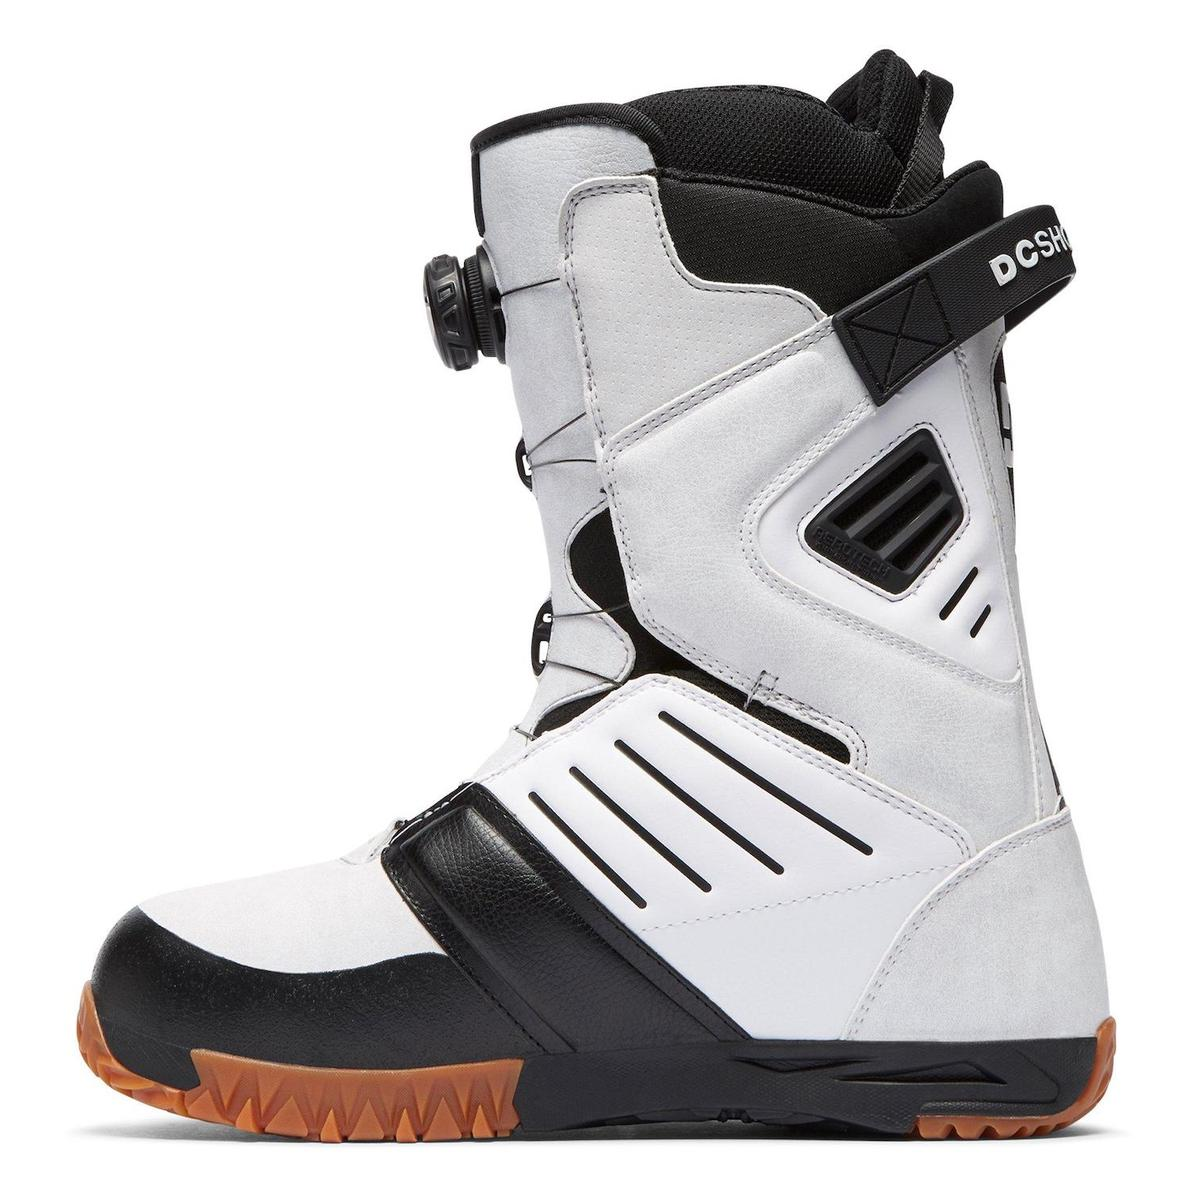 DC Judge BOA Men's Snowboard Boots